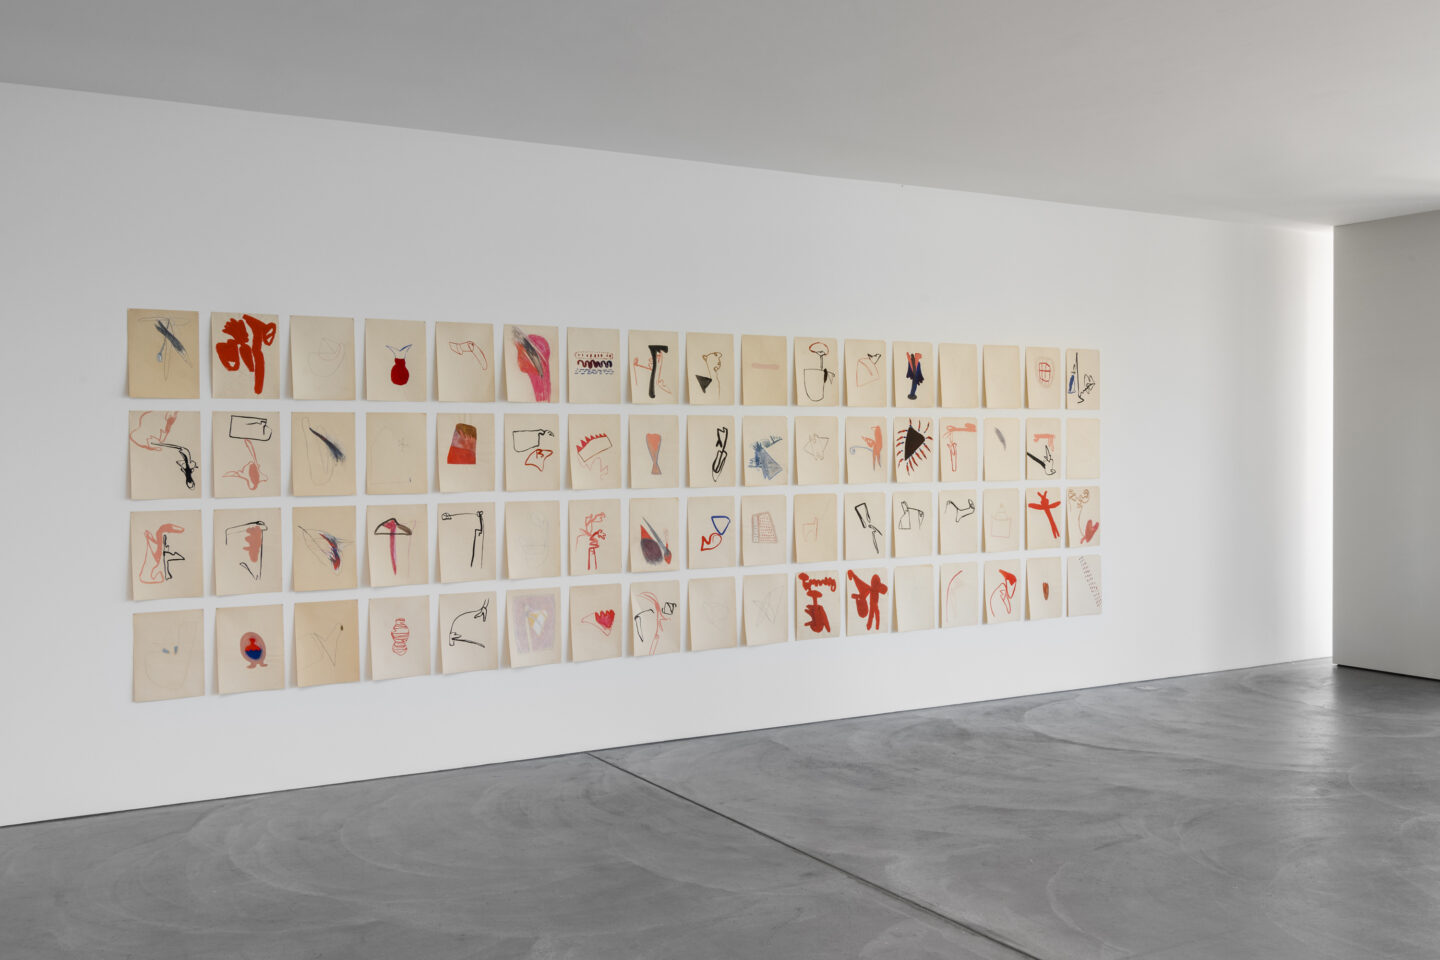 Exhibitioin View Marianne Eigenheer Soloshow at von Bartha, Basel, 2019 / Photo: Ben Köchlin / Courtesy: Marianne Eigenheer Estate and von Bartha